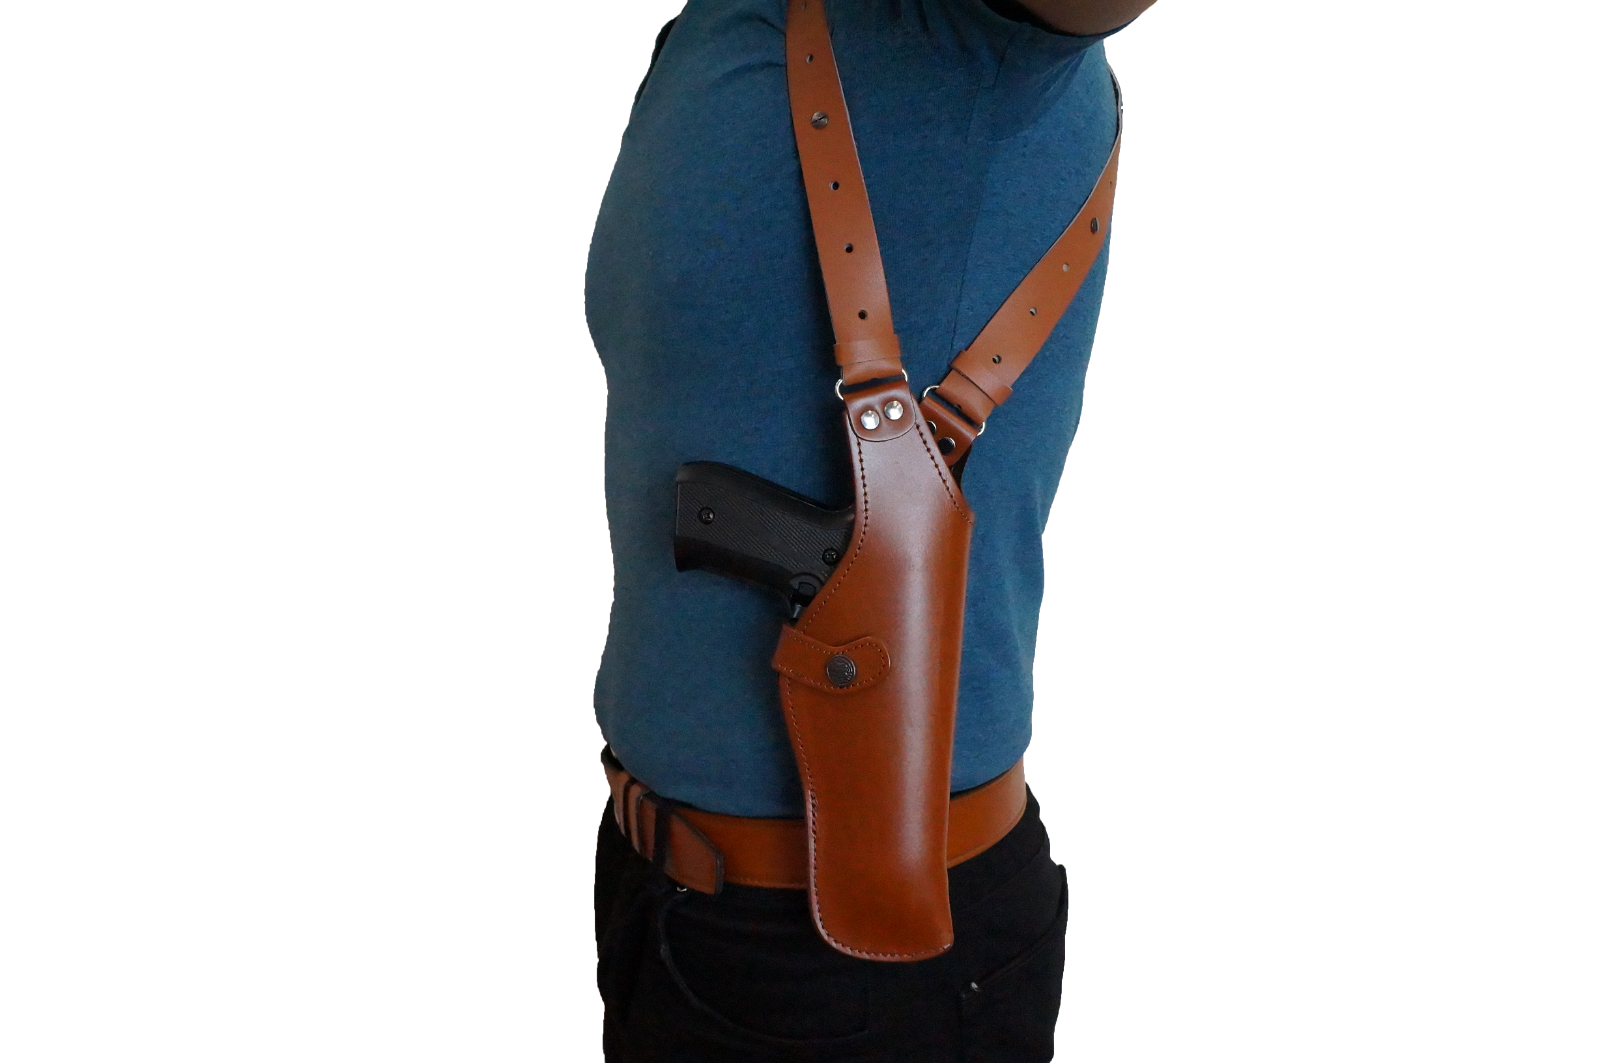 K452-911 Leder Vertical Shoulder Holster with Suede Suede Suede Lining Colt 1911 up to 5